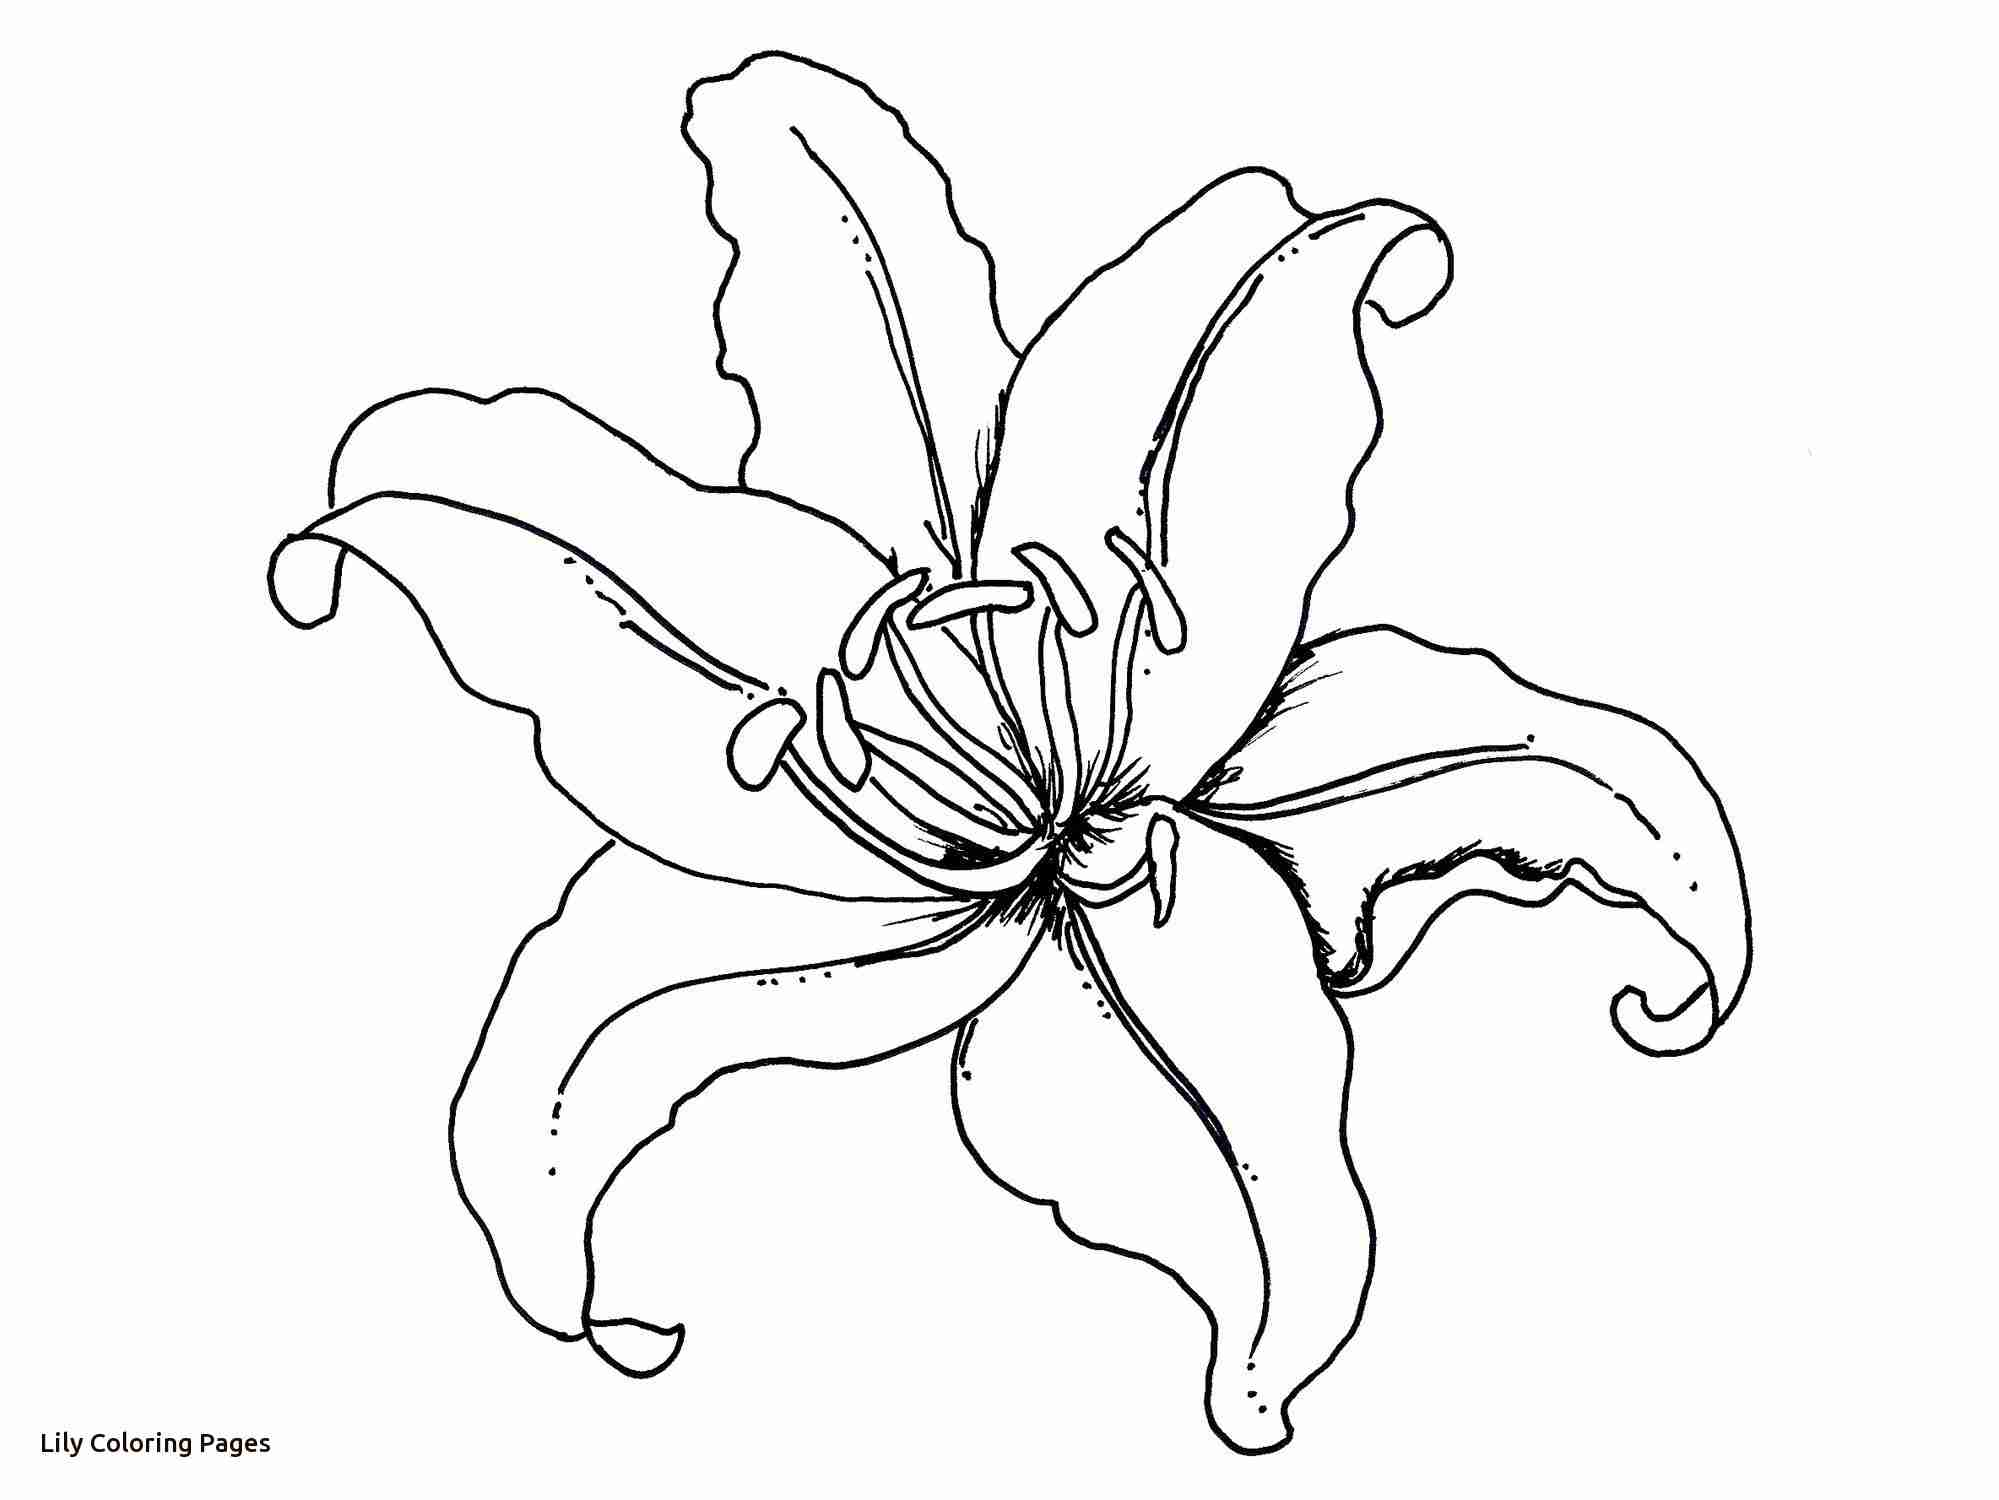 1999x1500 Tiger Lily Coloring Page Free Printable Pages Adorable Olegratiy